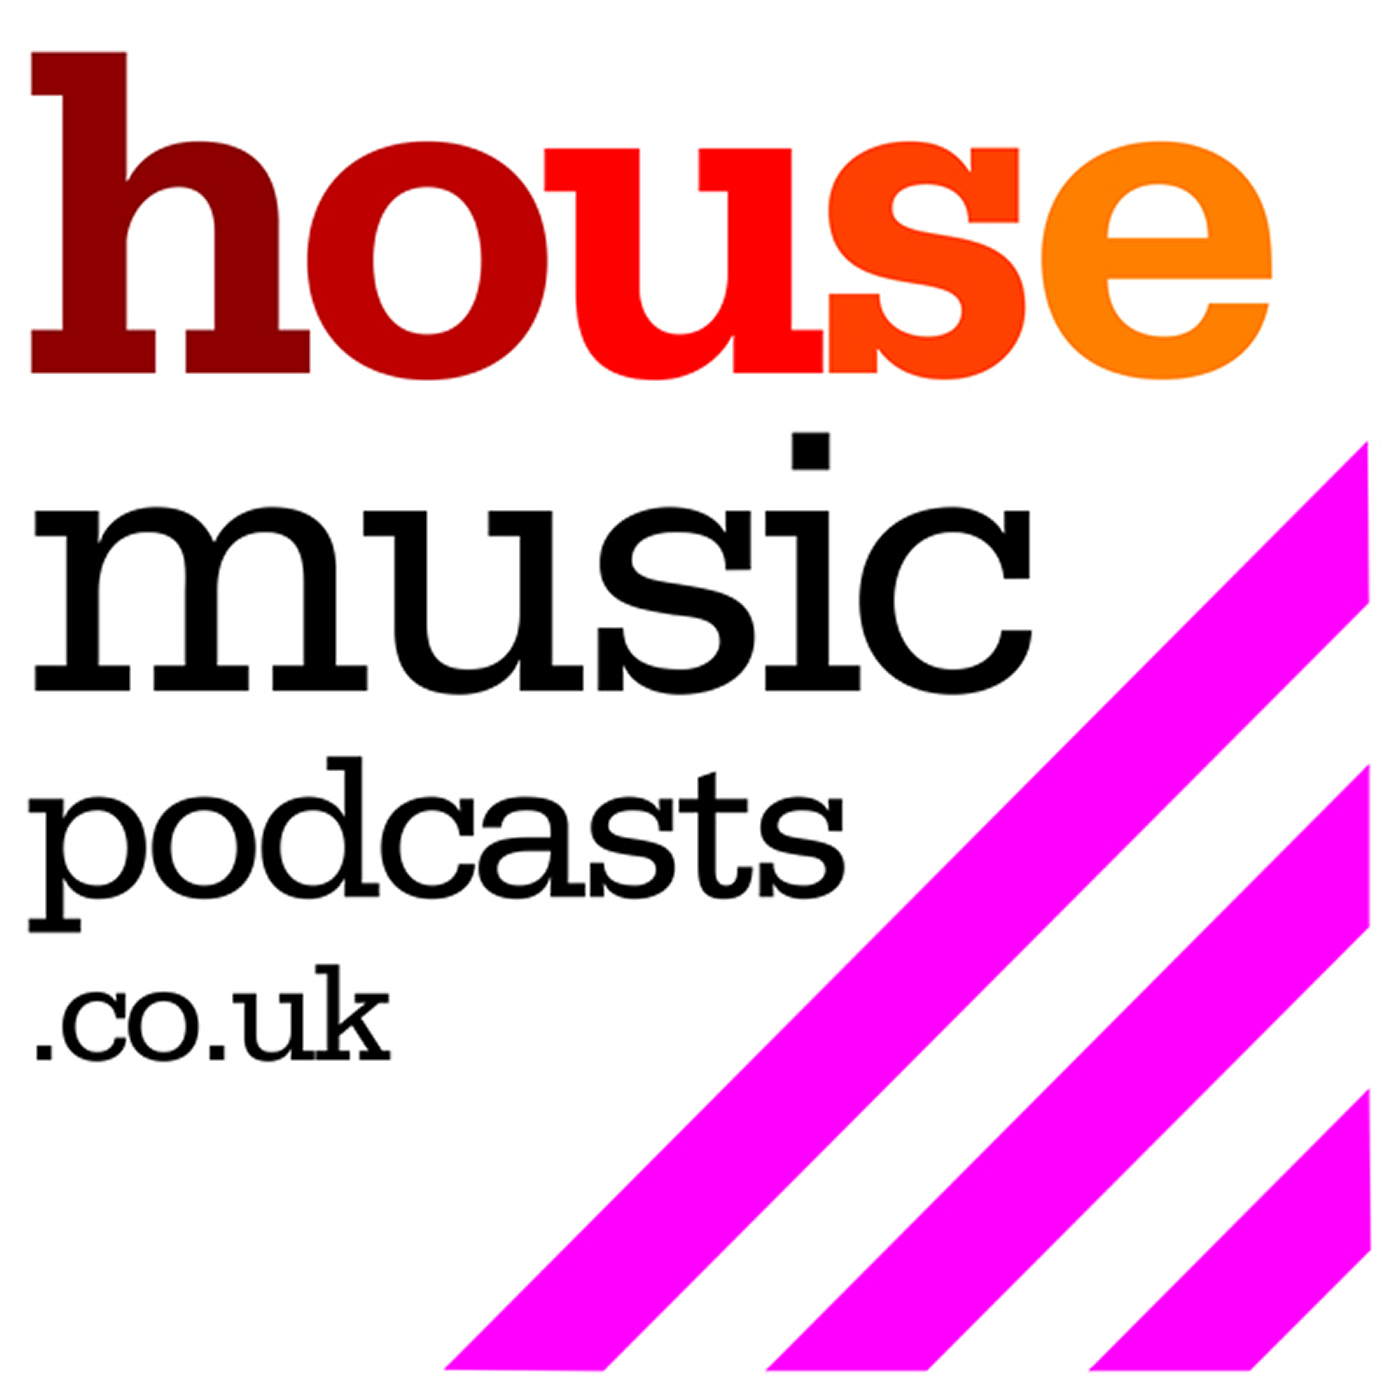 House Music Podcasts » Luis del Villar